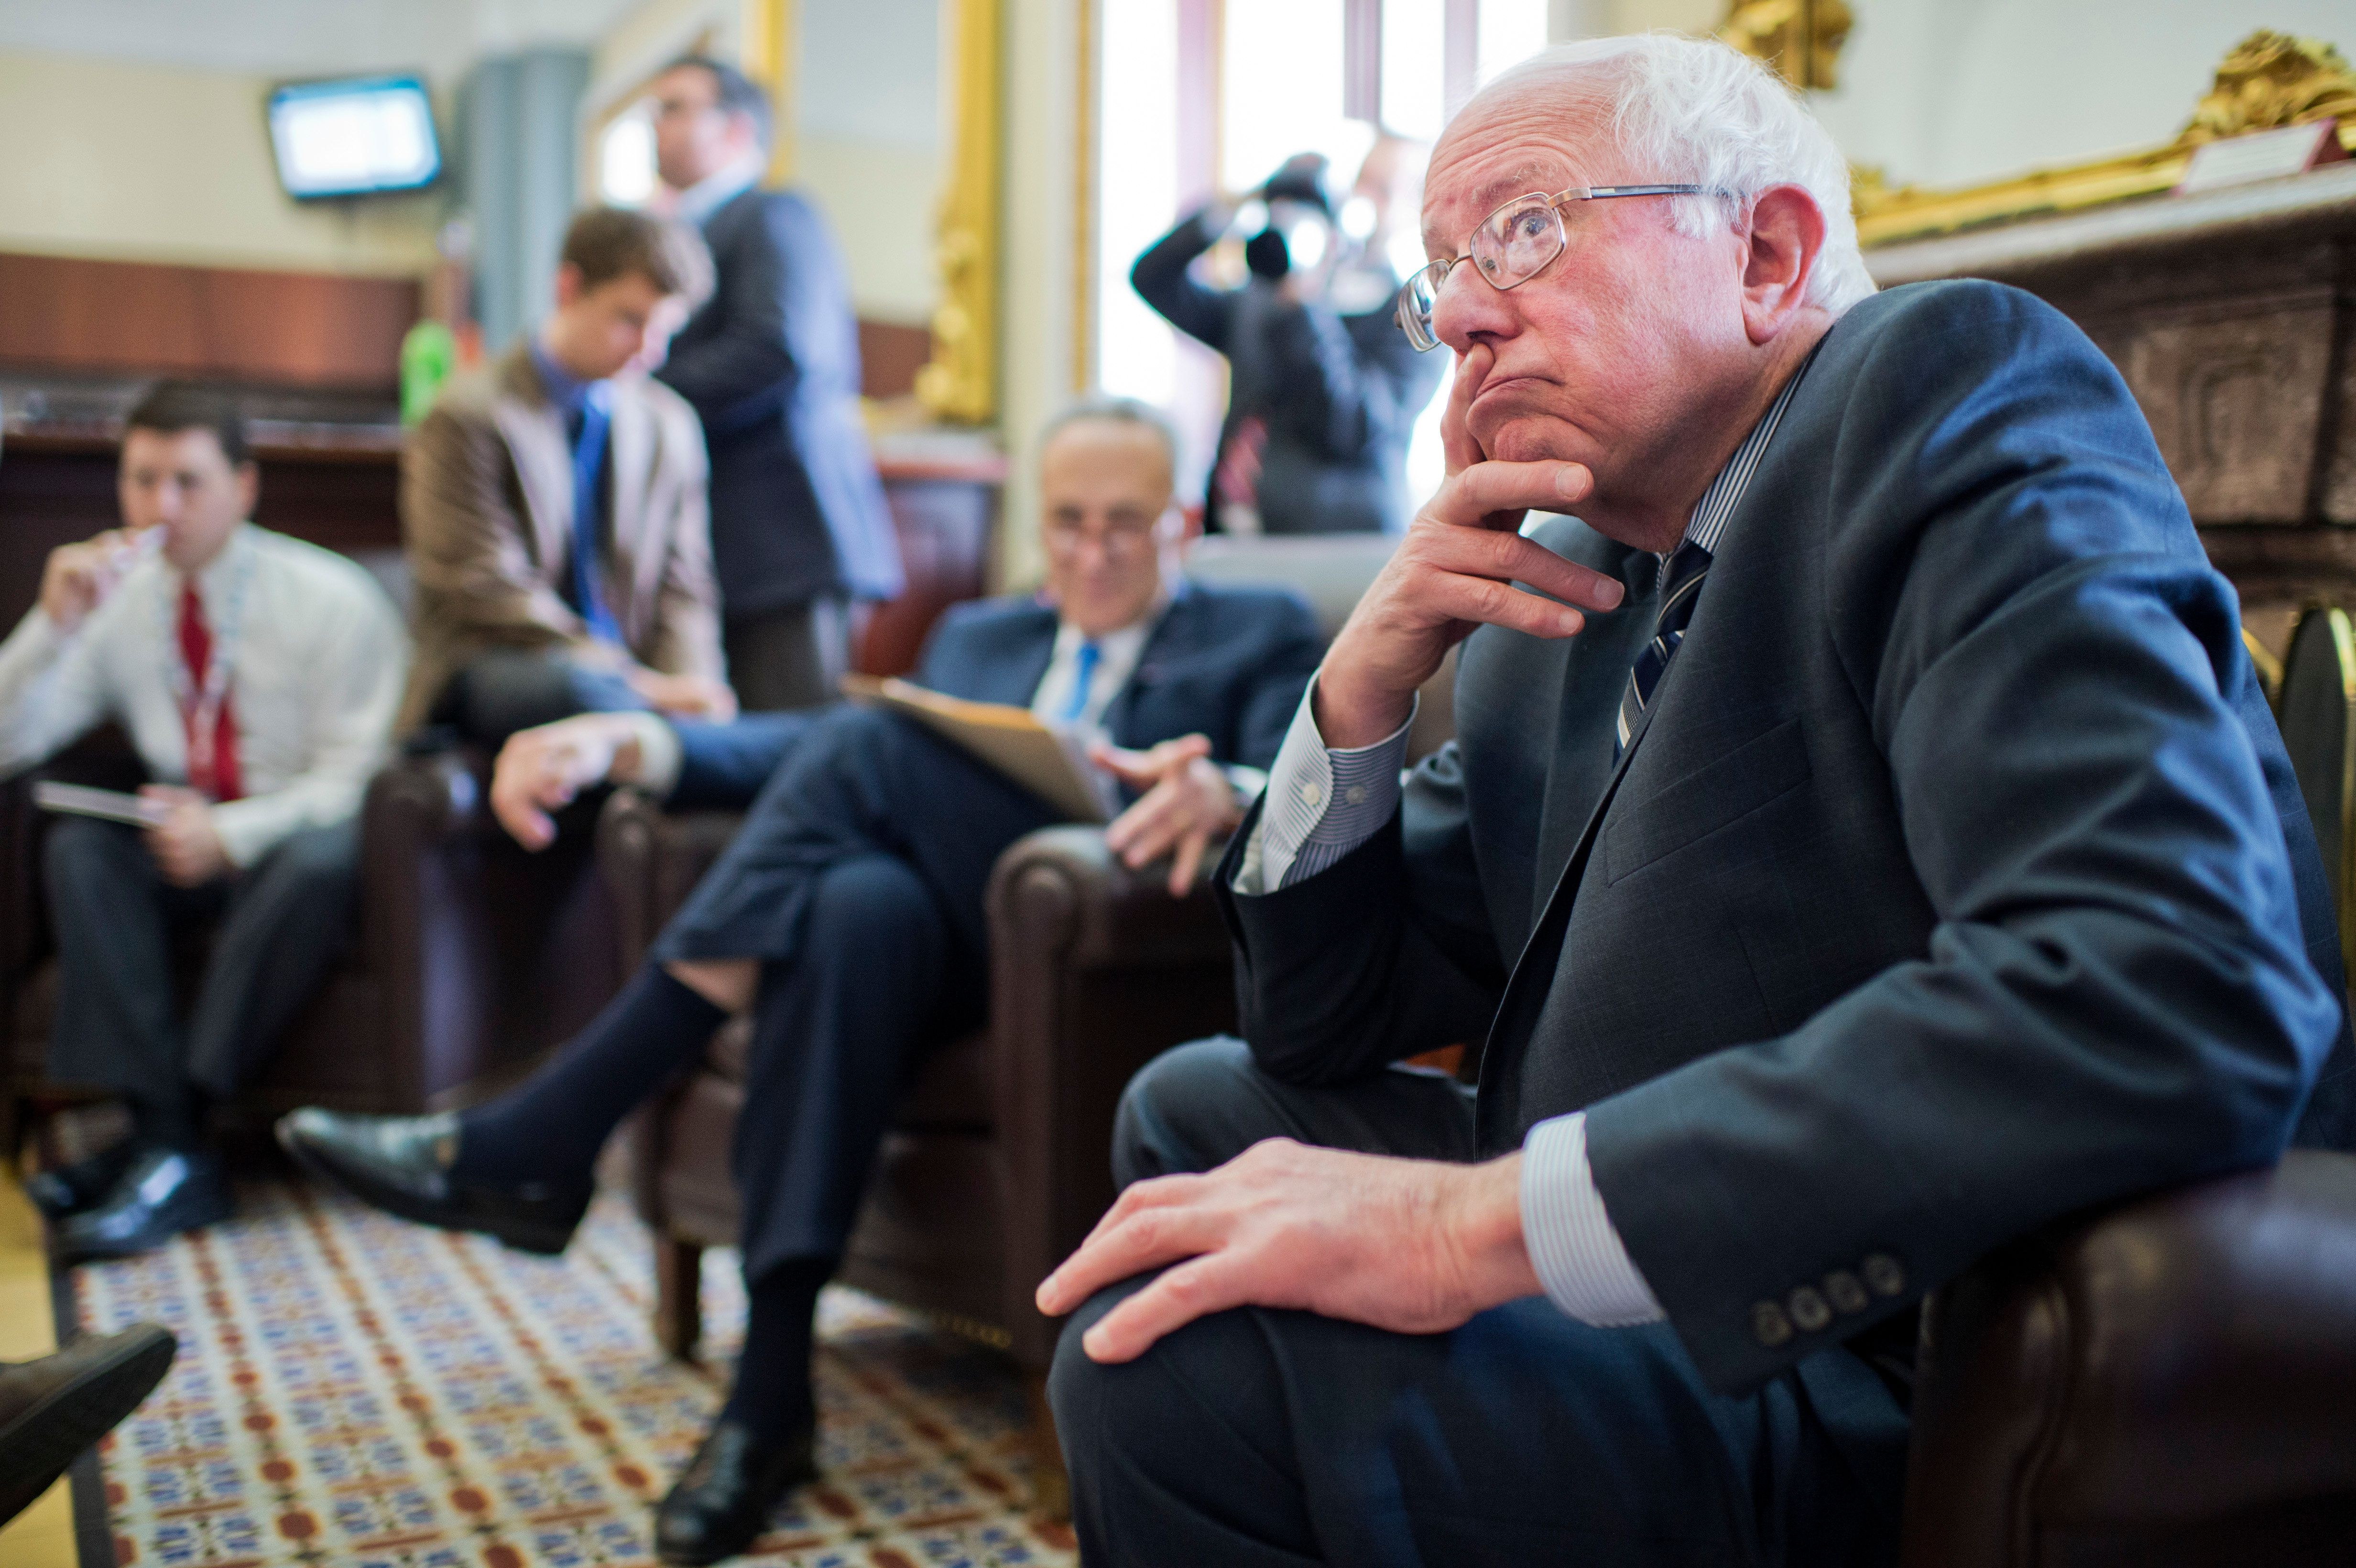 Sens. Bernie Sanders (I-Vt.) and Chuck Schumer (D-N.Y.) are among the leaders of a Senate push to add a public option to the